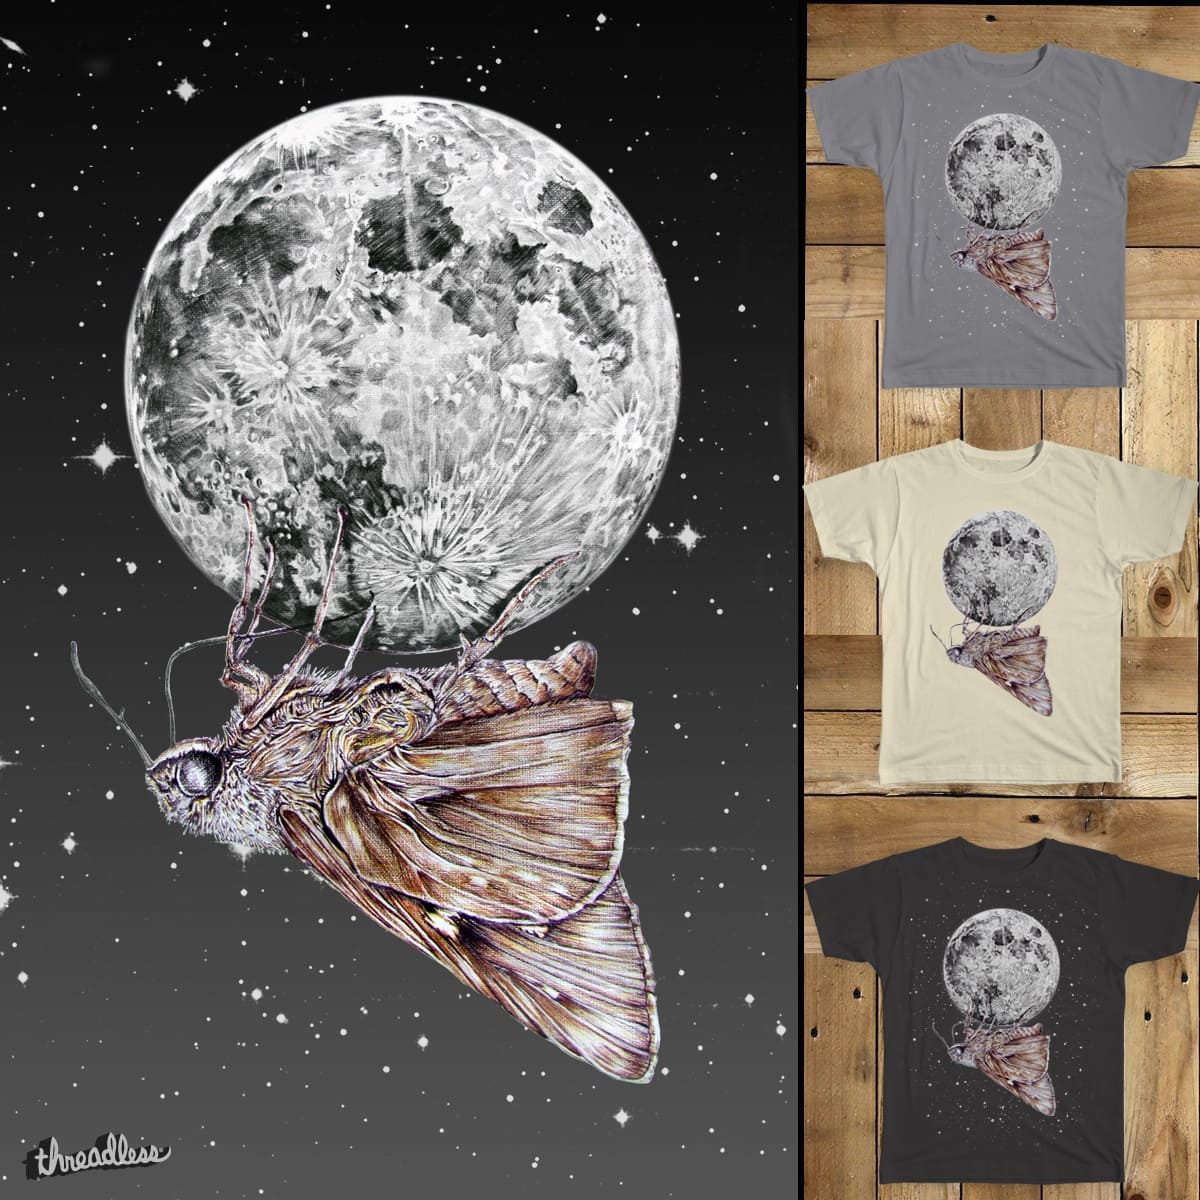 Moon Moth by ennui du fromage on Threadless